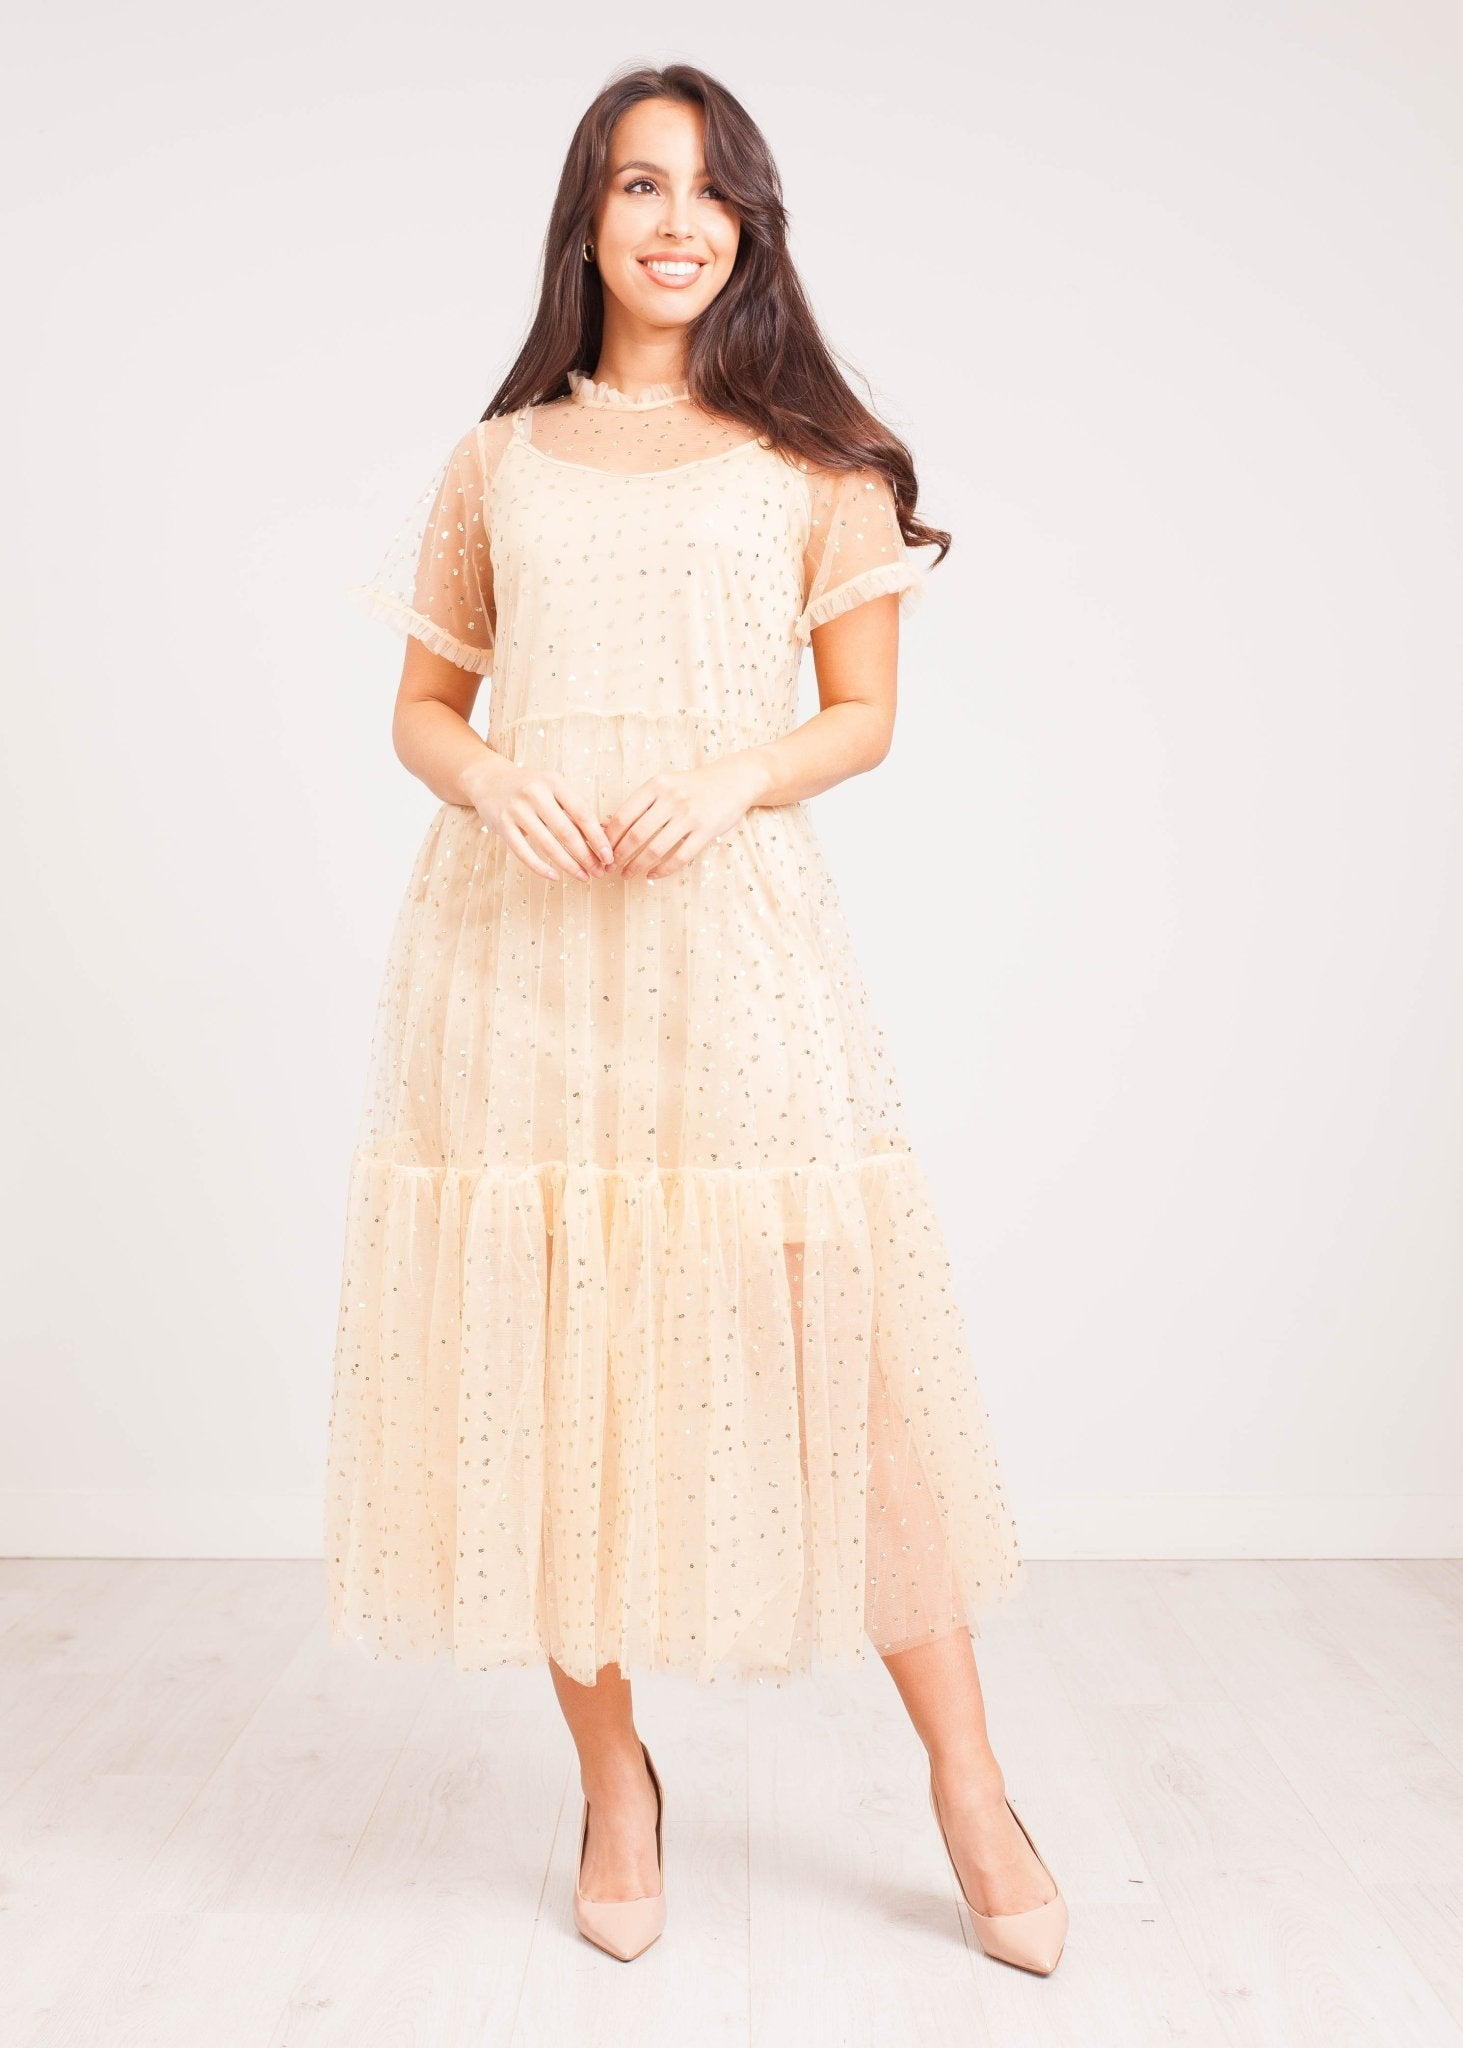 Jasmine Midi Dress in Beige Tulle - The Walk in Wardrobe